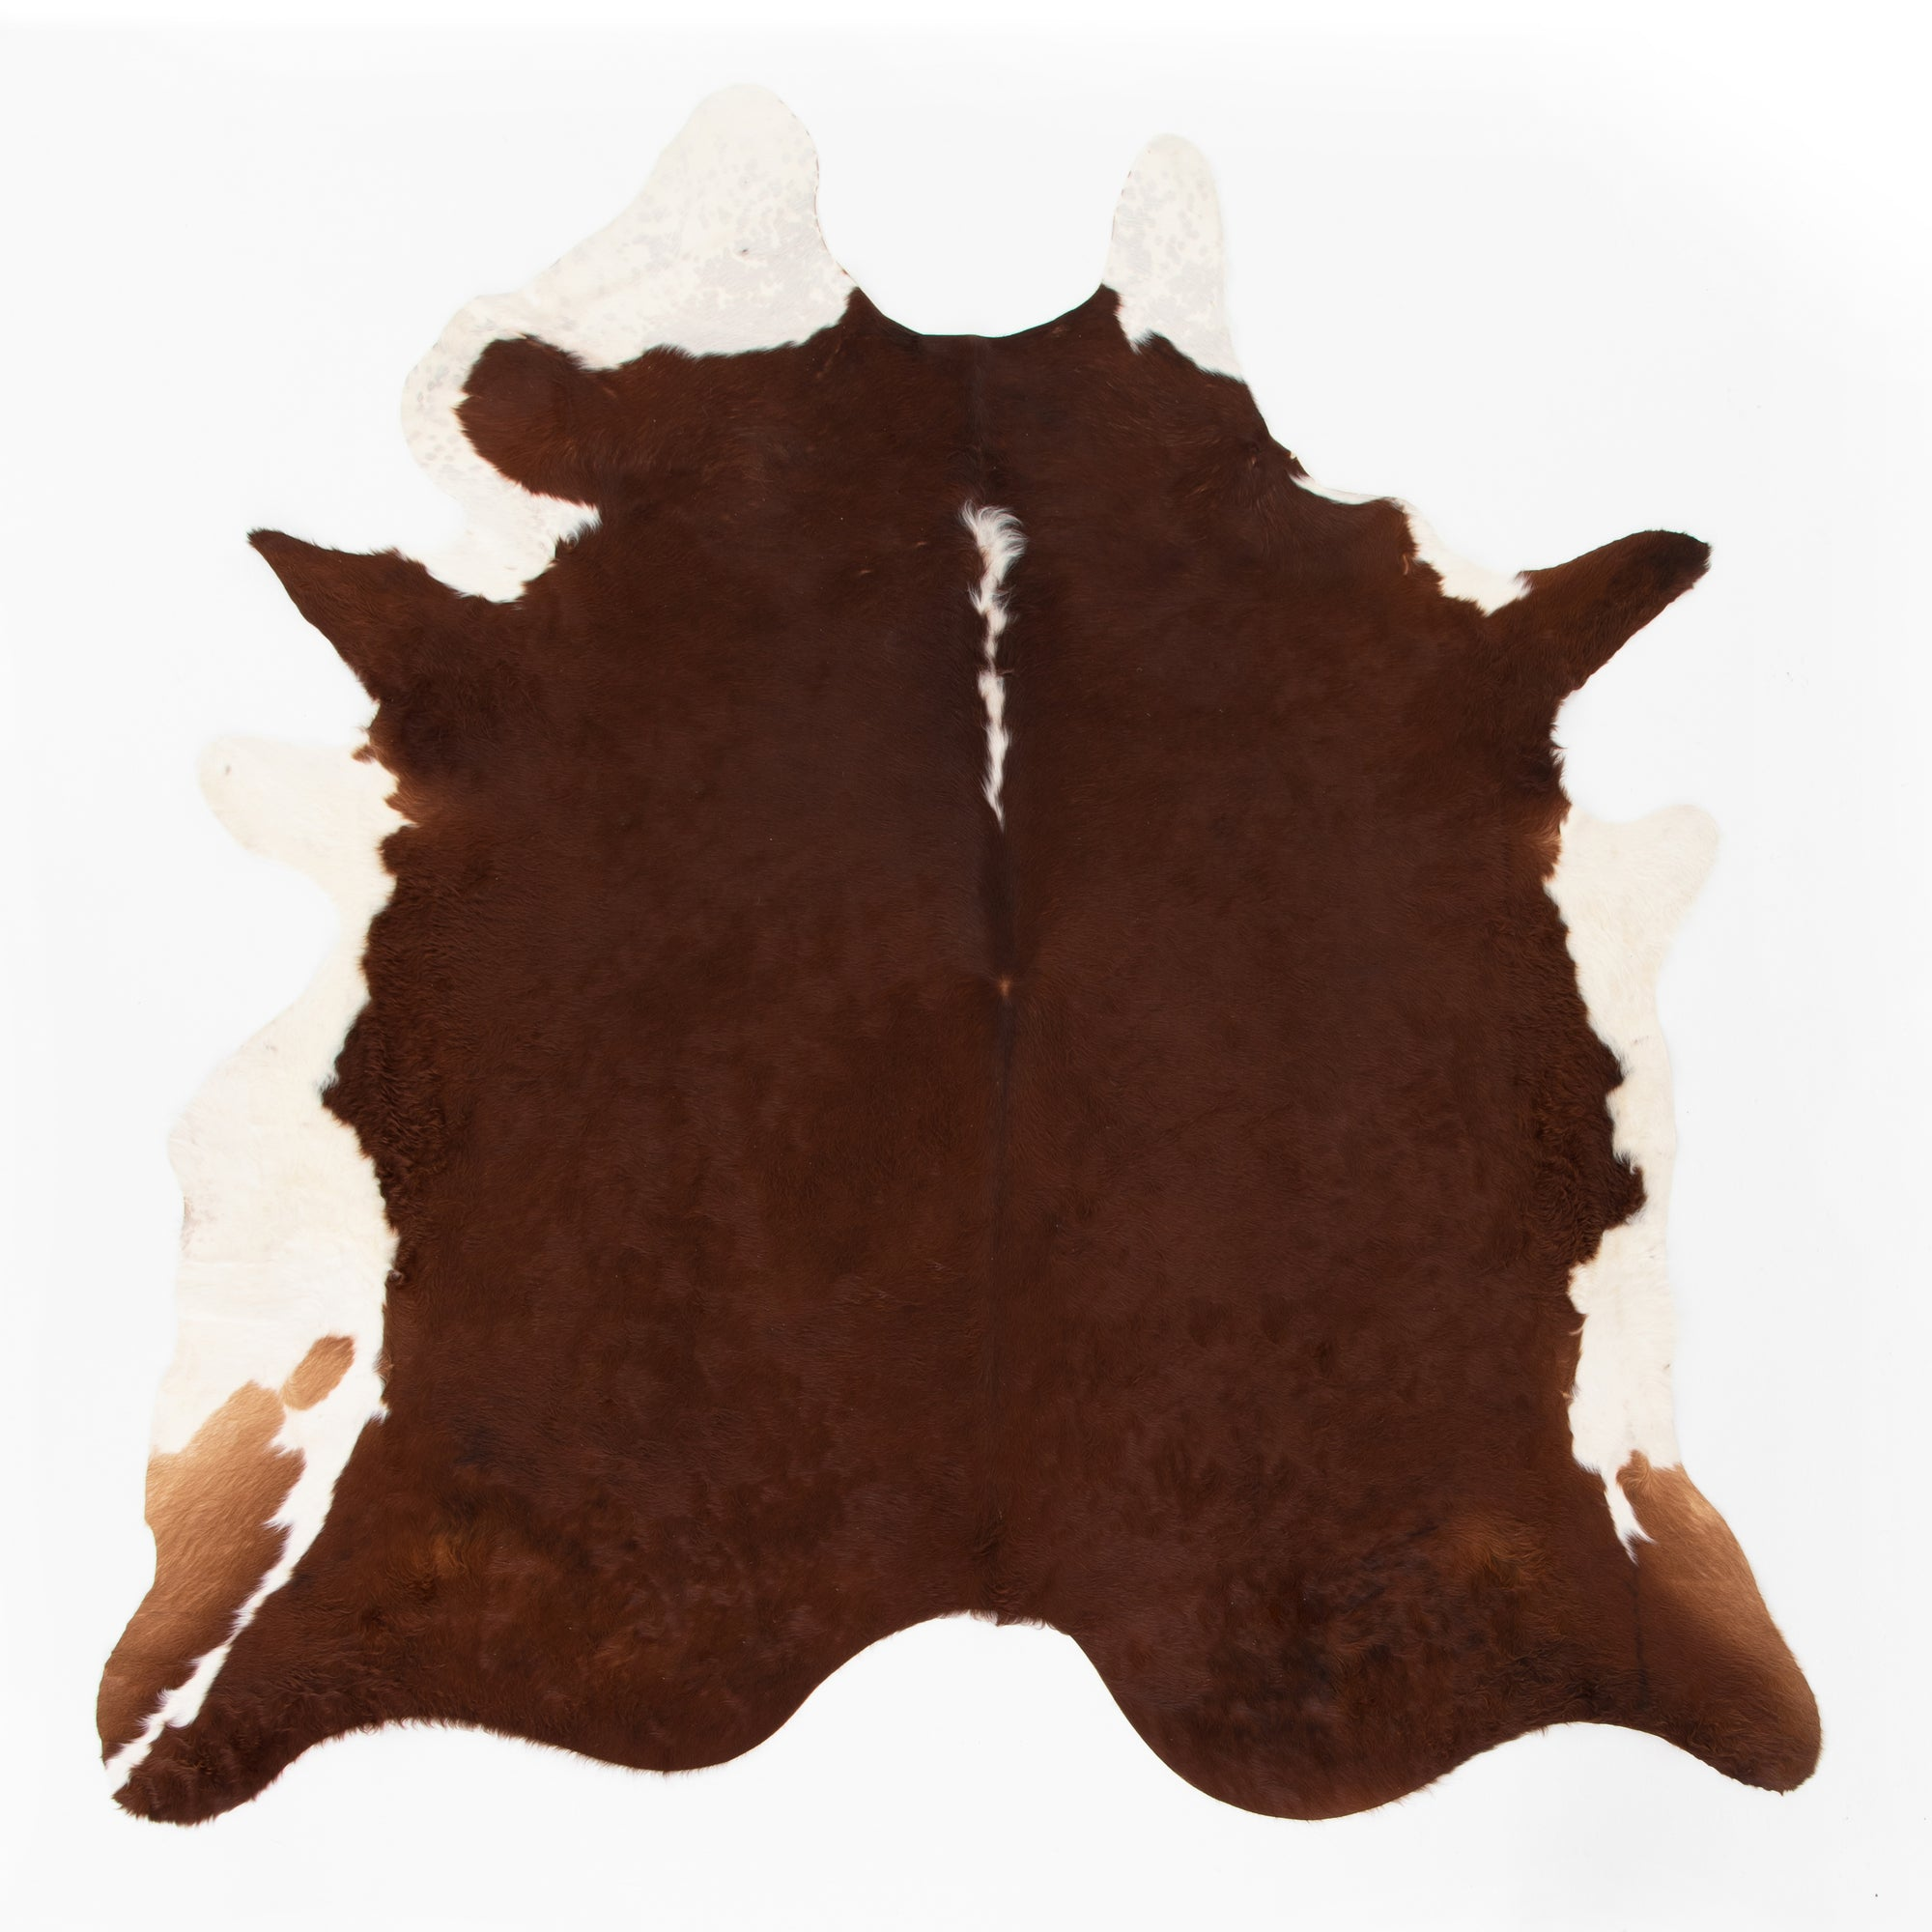 Cardin Cowhide Rug, Brown And White